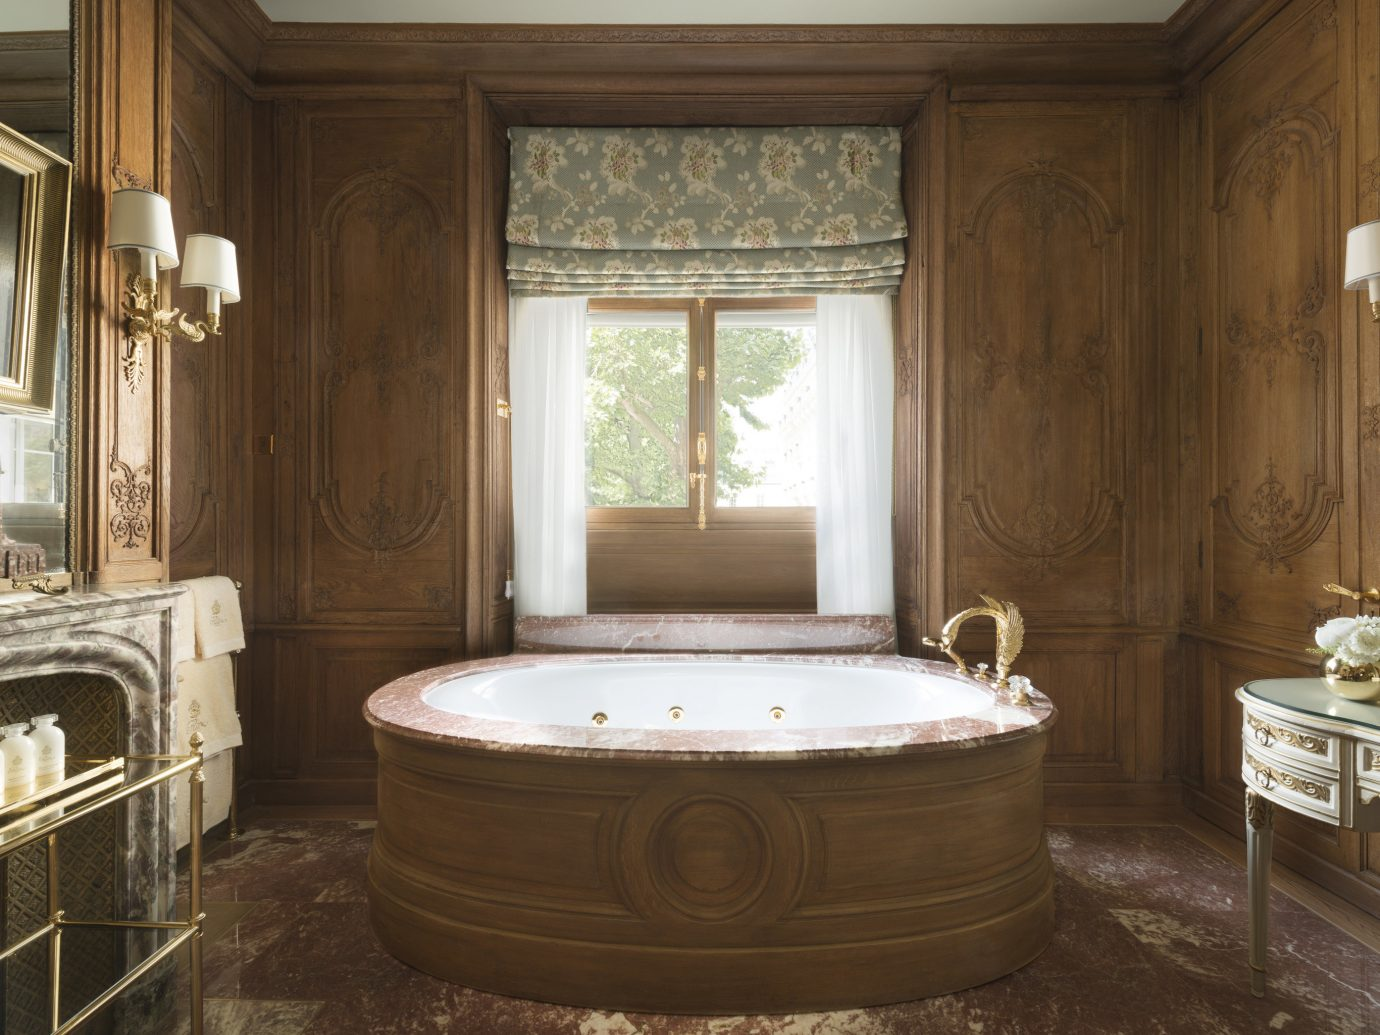 Hotels Luxury Travel indoor window room bathroom interior design estate bathtub flooring floor tub Suite Bath old stone